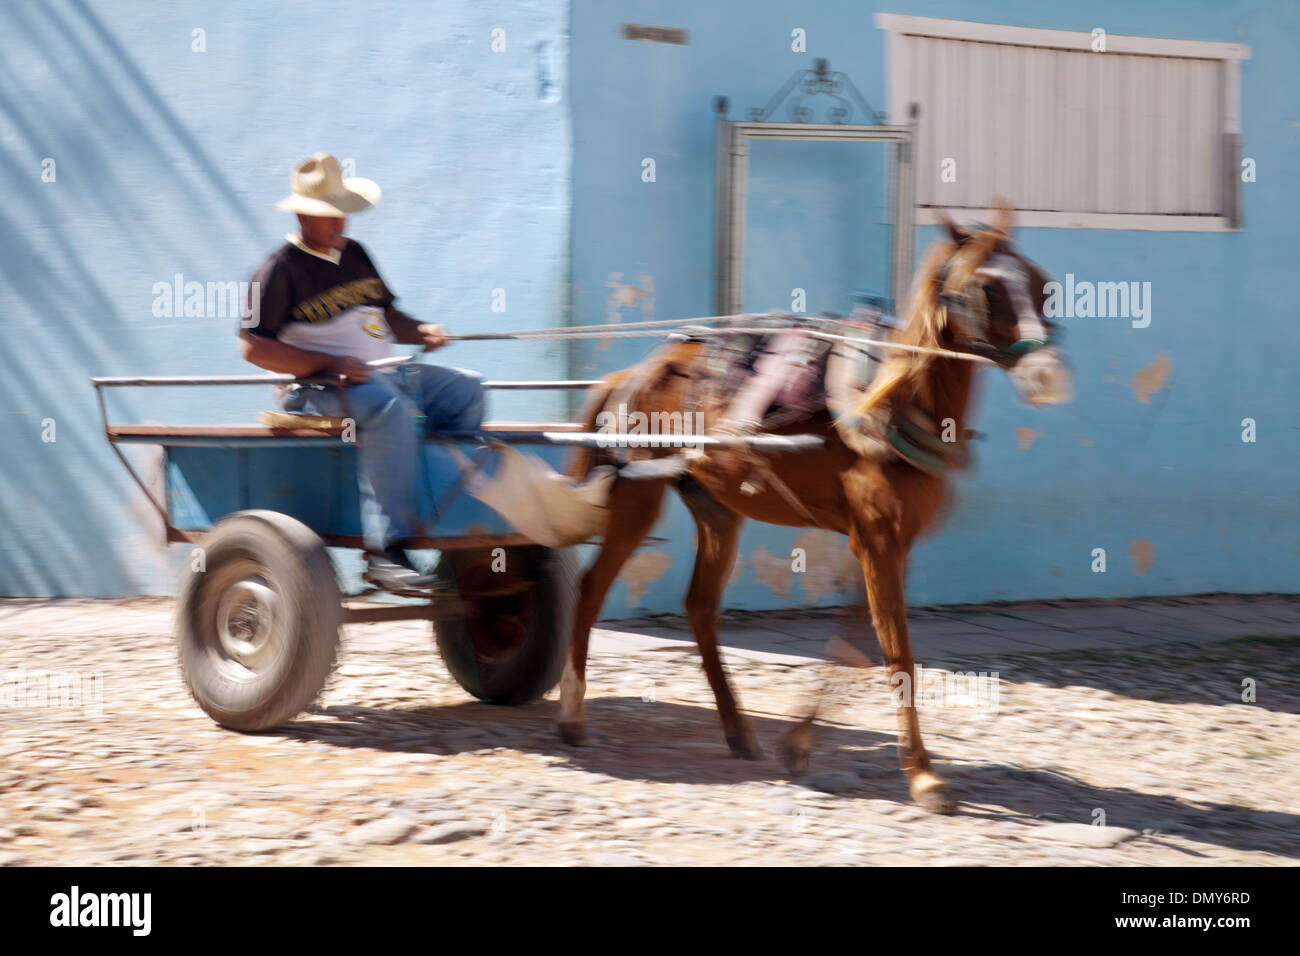 Trinidad, Cuba, horse and cart transport with motion blur, Cuba, Caribbean - Stock Image